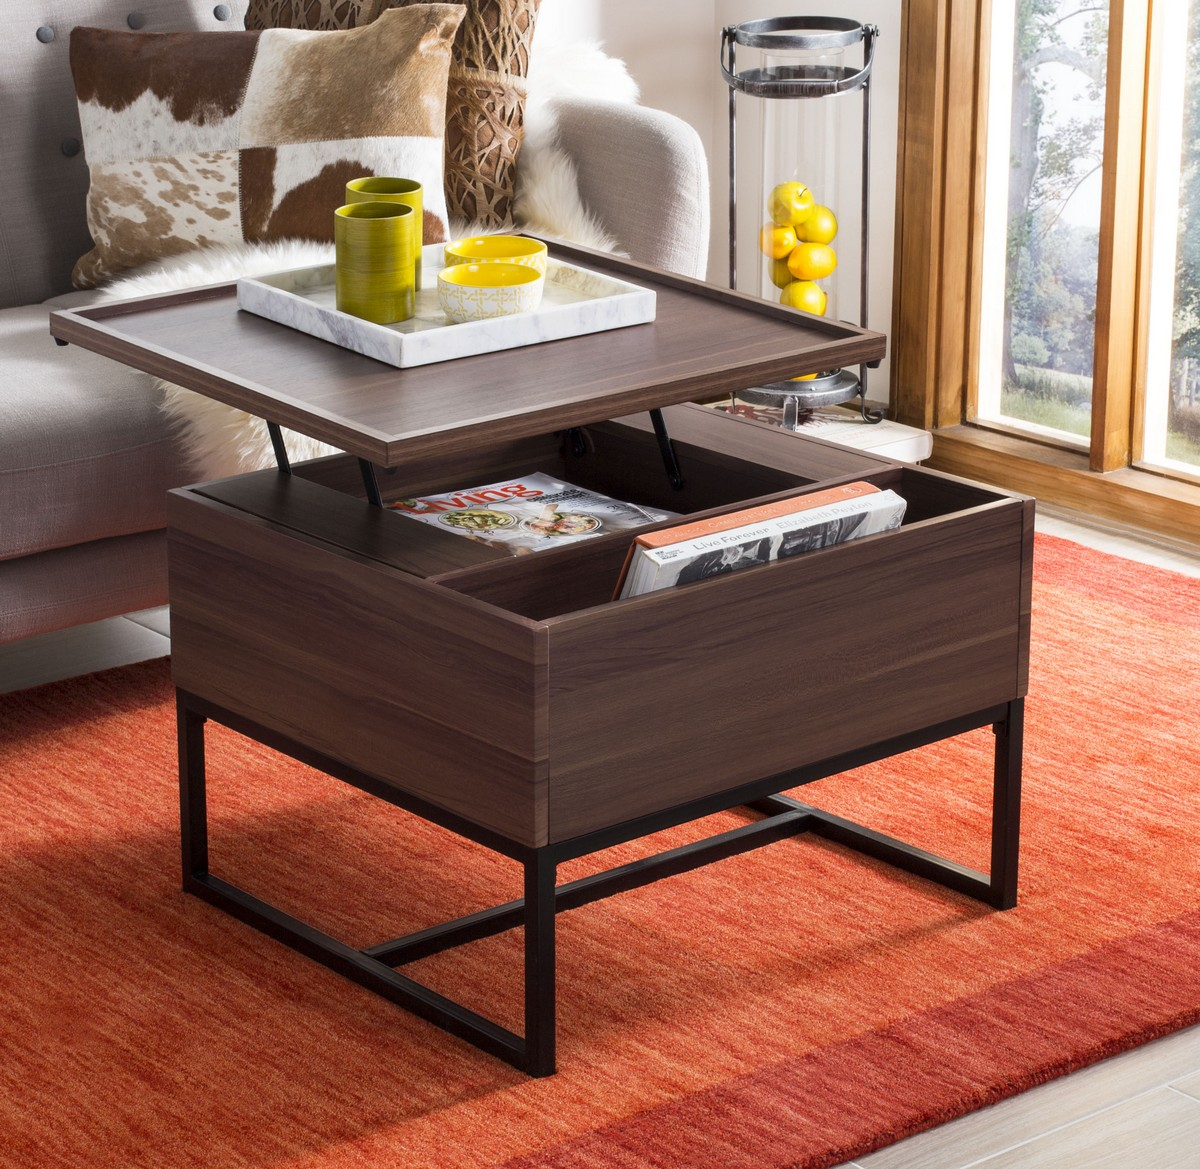 FOX2240A Coffee Tables Furniture by Safavieh